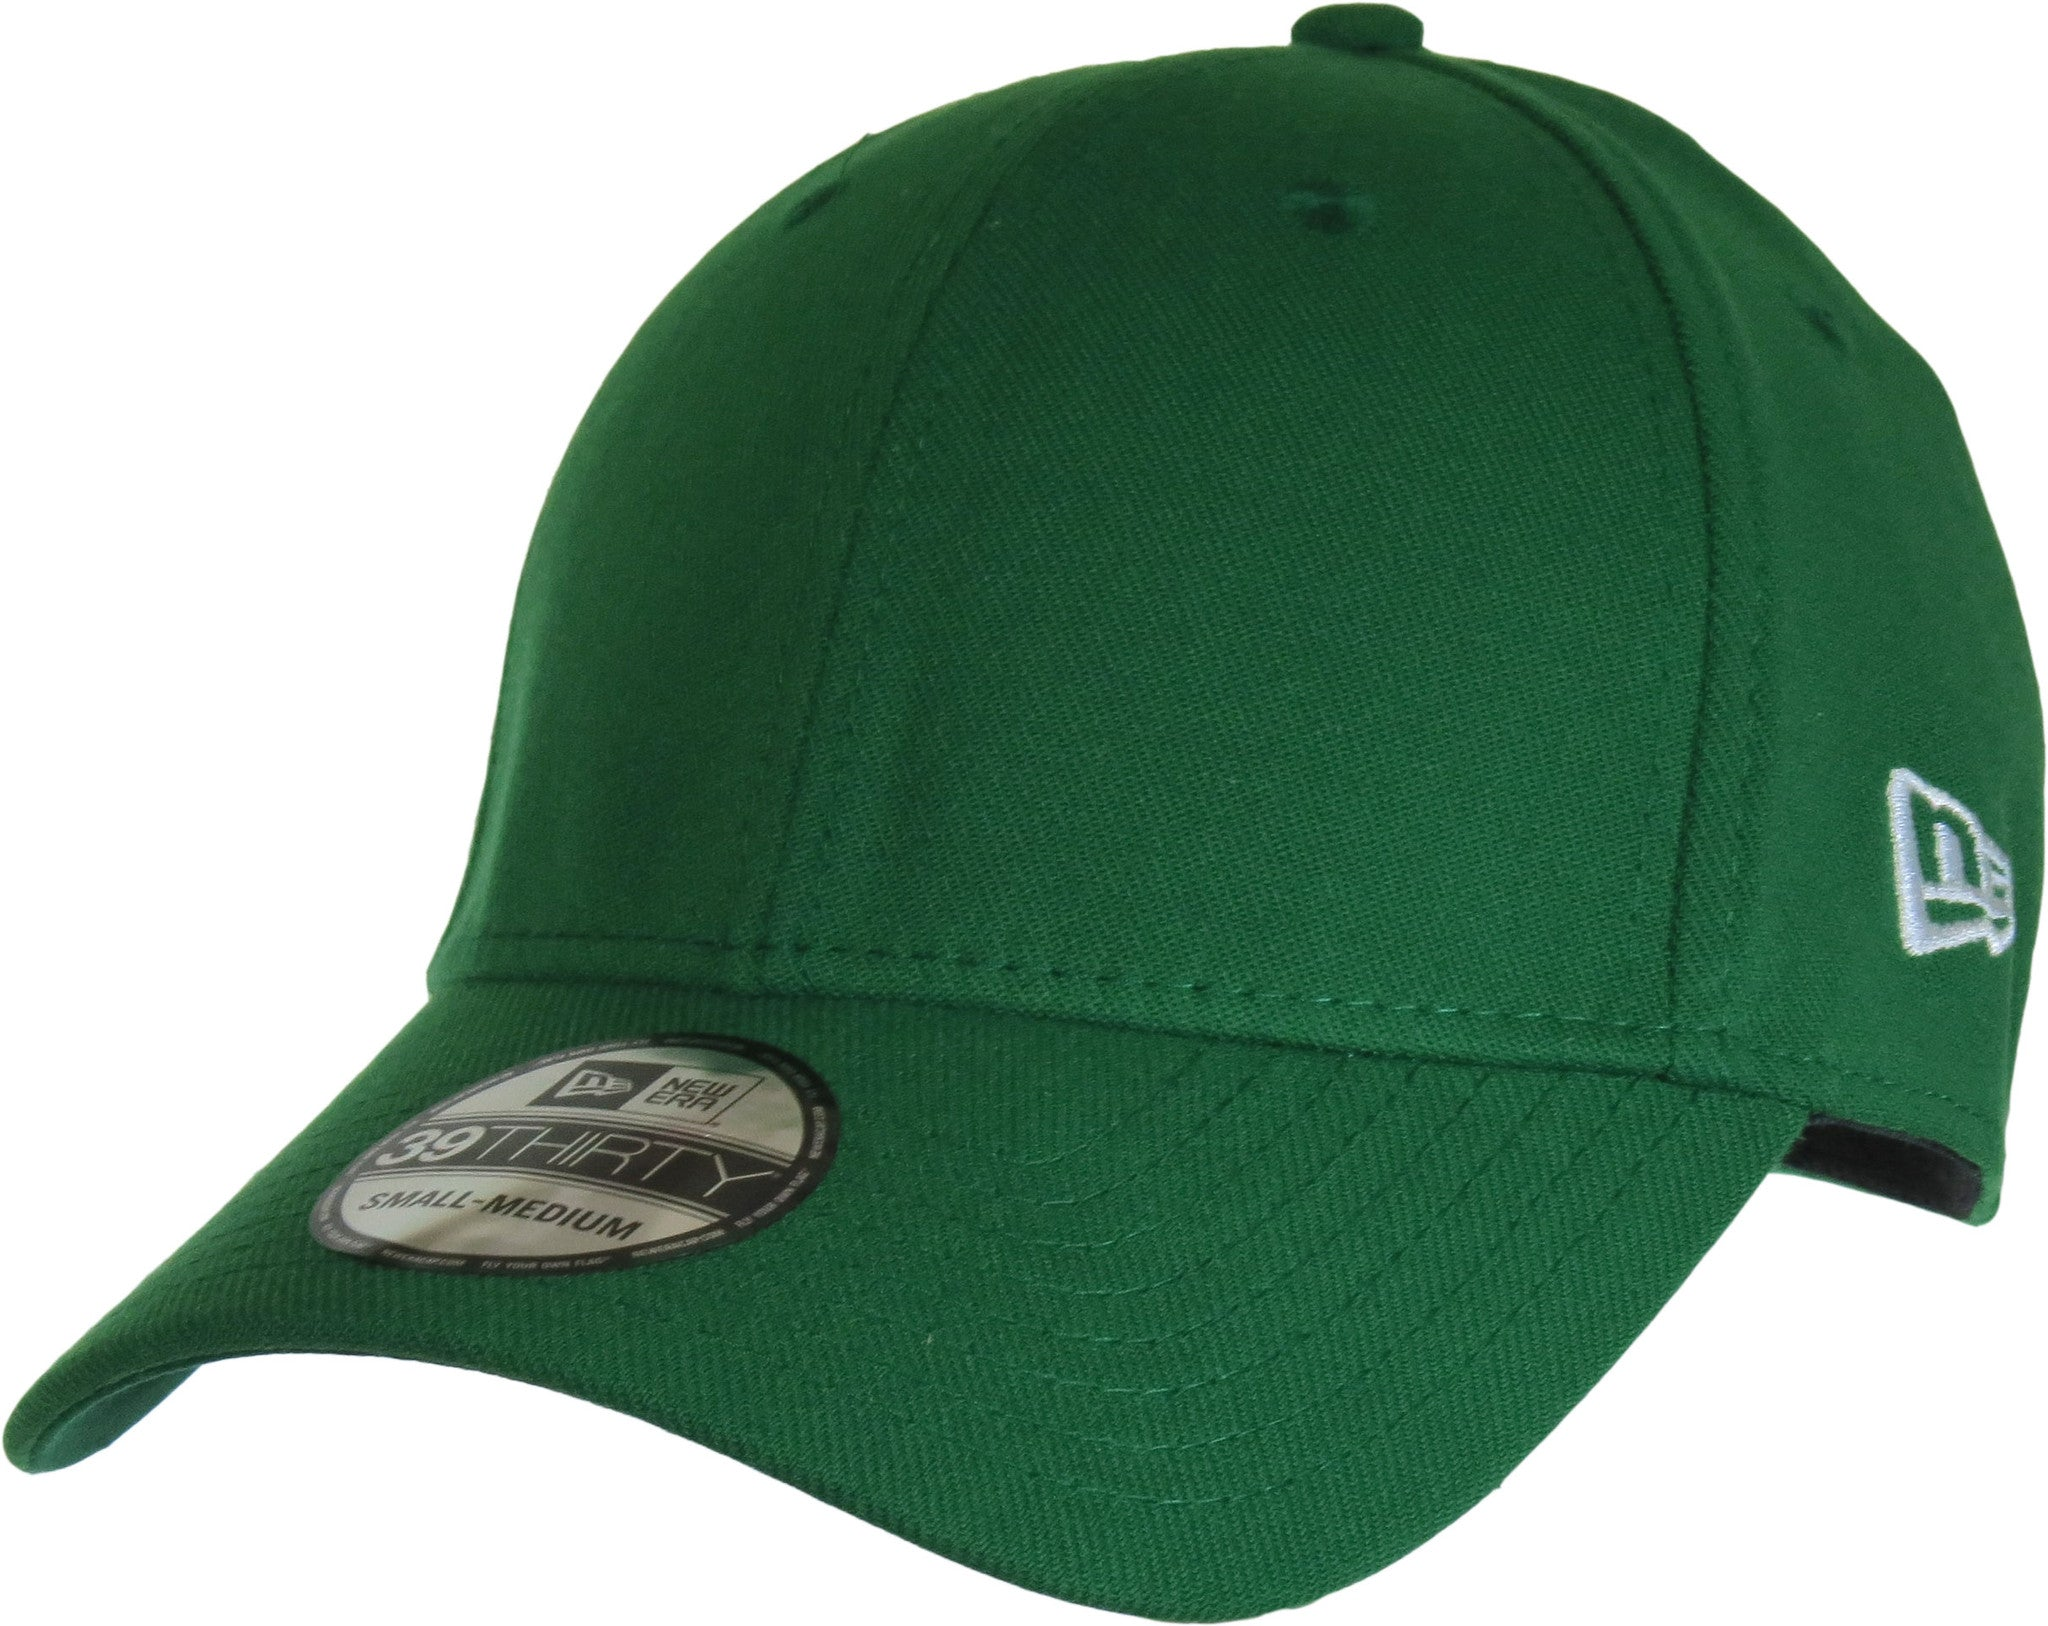 2818e0d238a New Era 3930 Classic Curved Peak Stretch Fit Plain Kelly Green Baseball Cap  - pumpheadgear